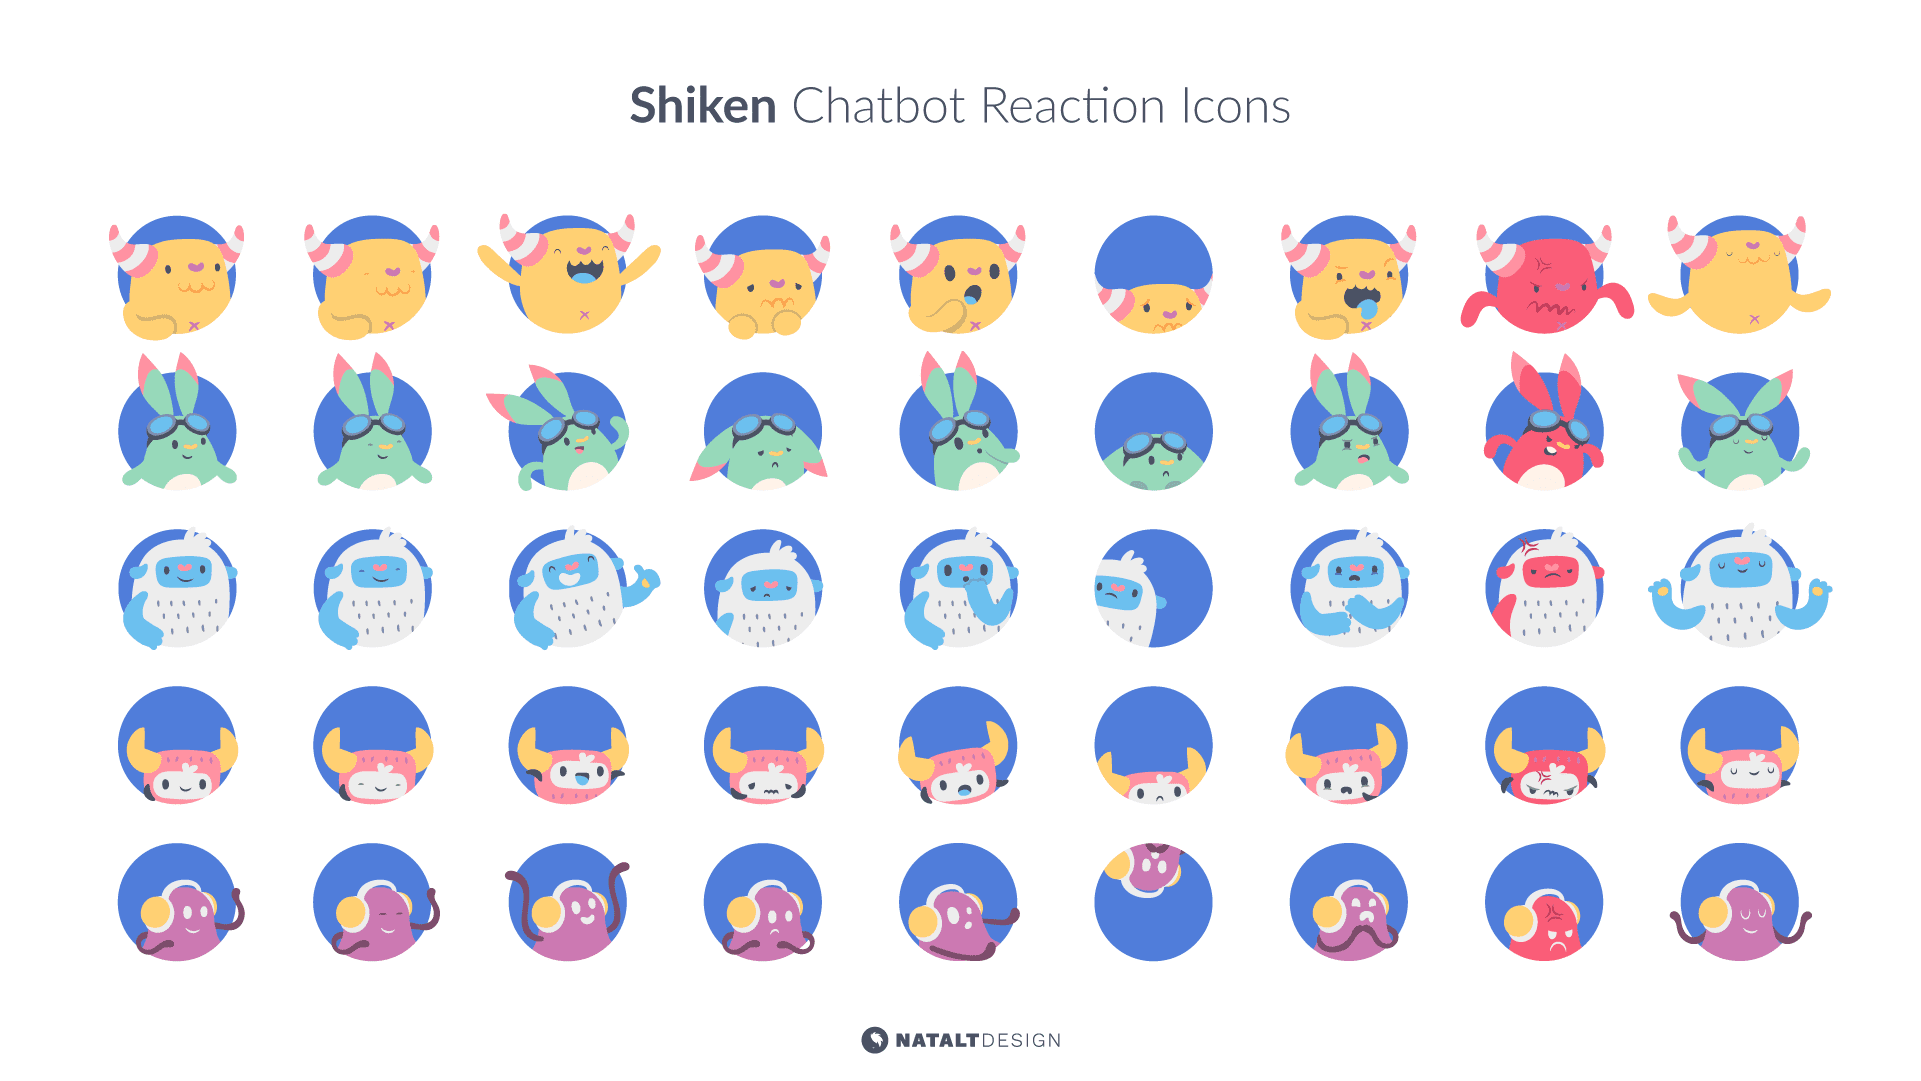 Shiken chatbot icon design